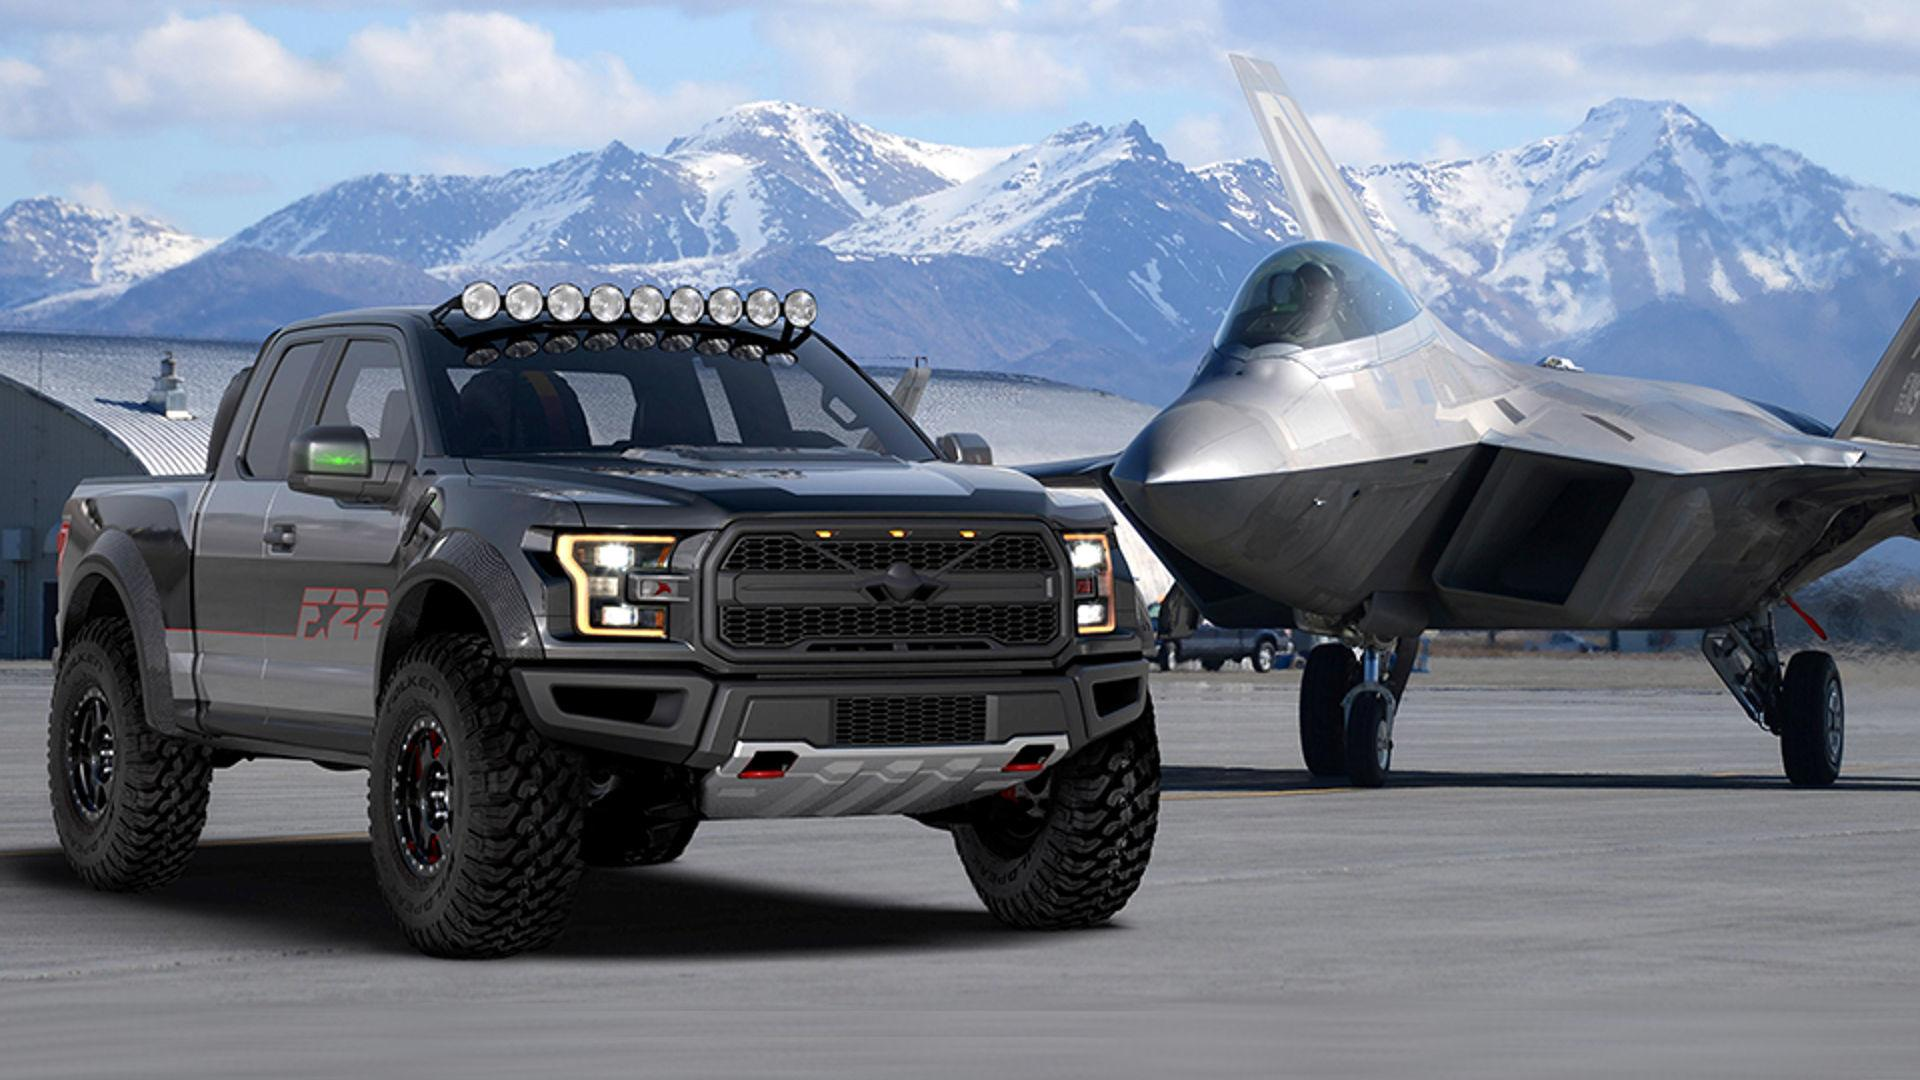 desktop first all pursuit responder download fullscreen truck f police mountainlion ford gallery new